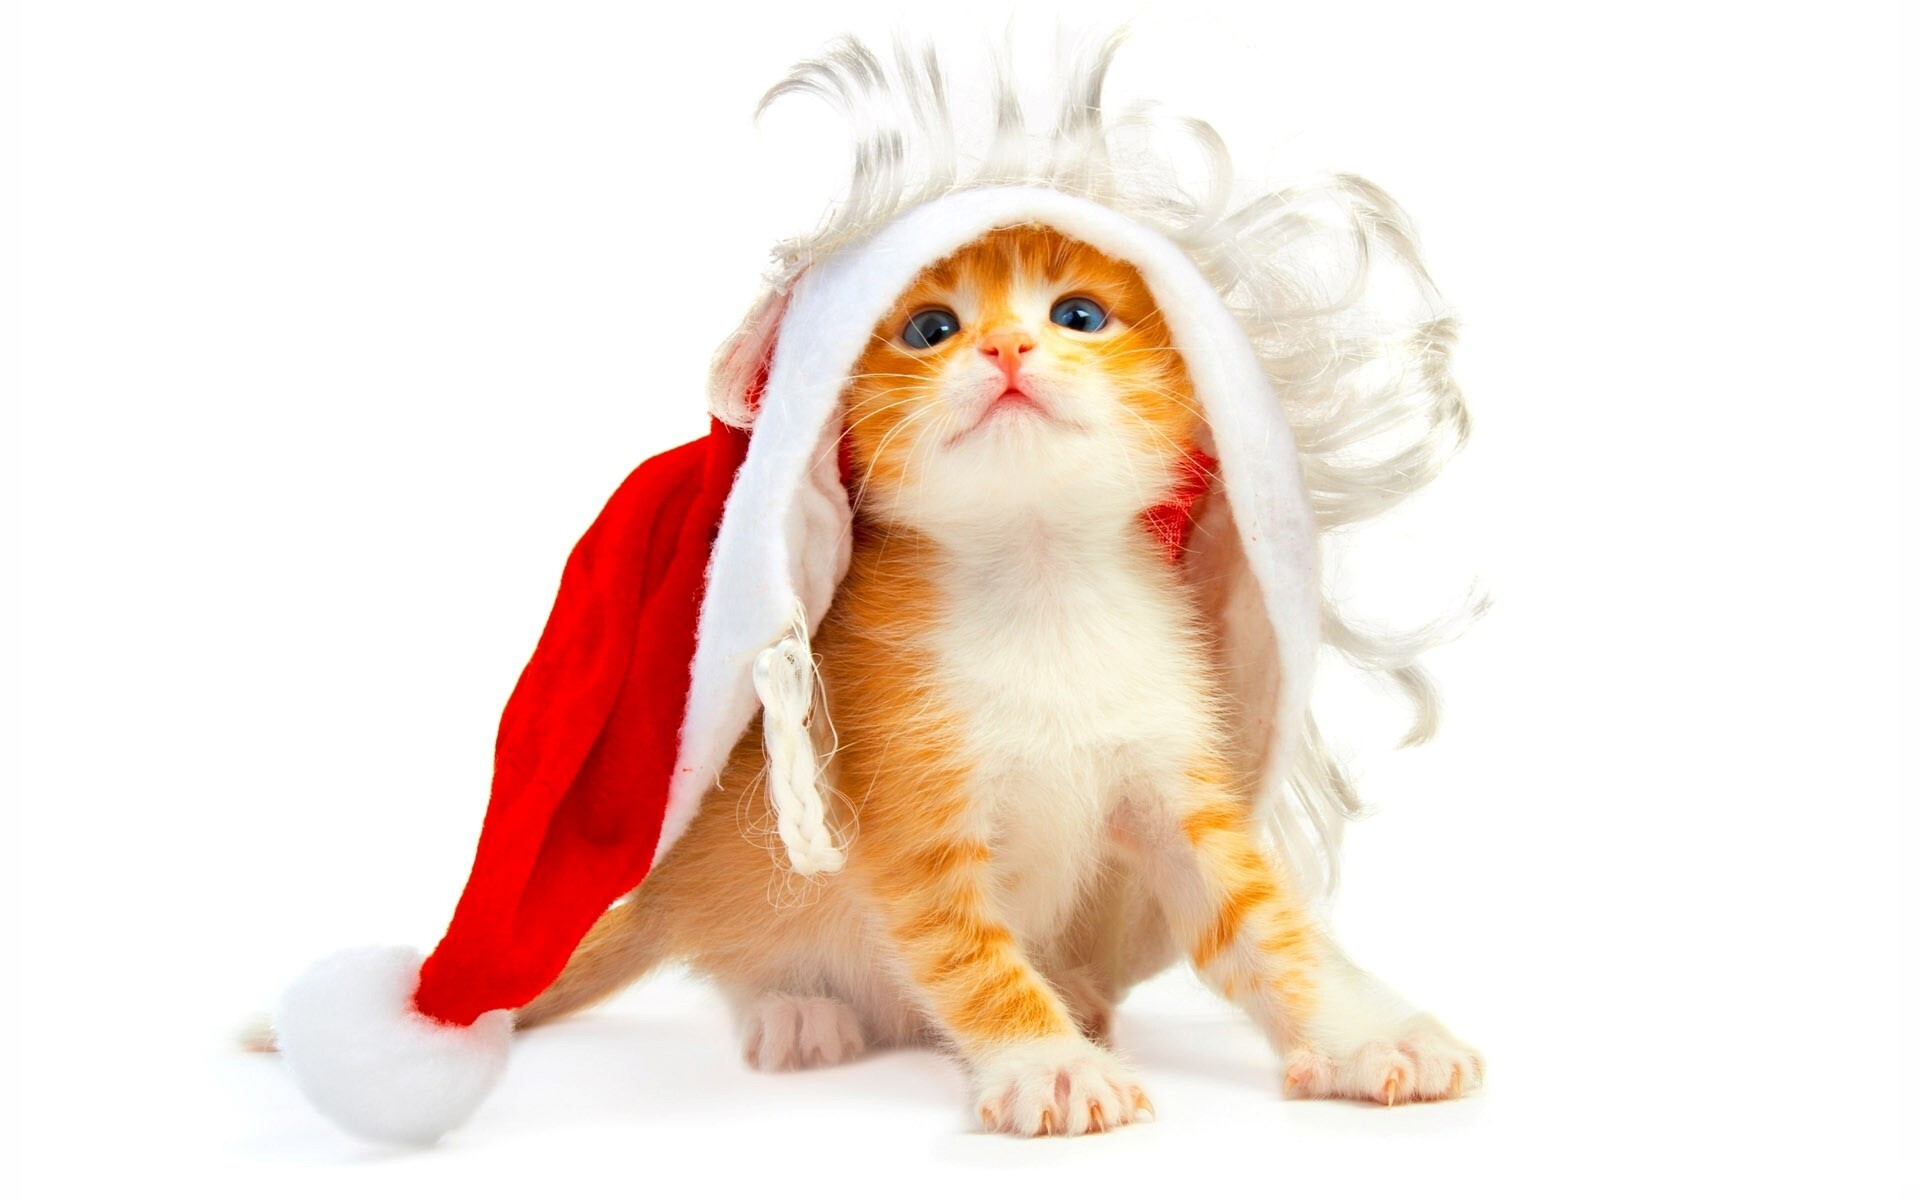 Wide cute cat with christmas free images hd wallpapers - Cute kitten wallpaper free download ...